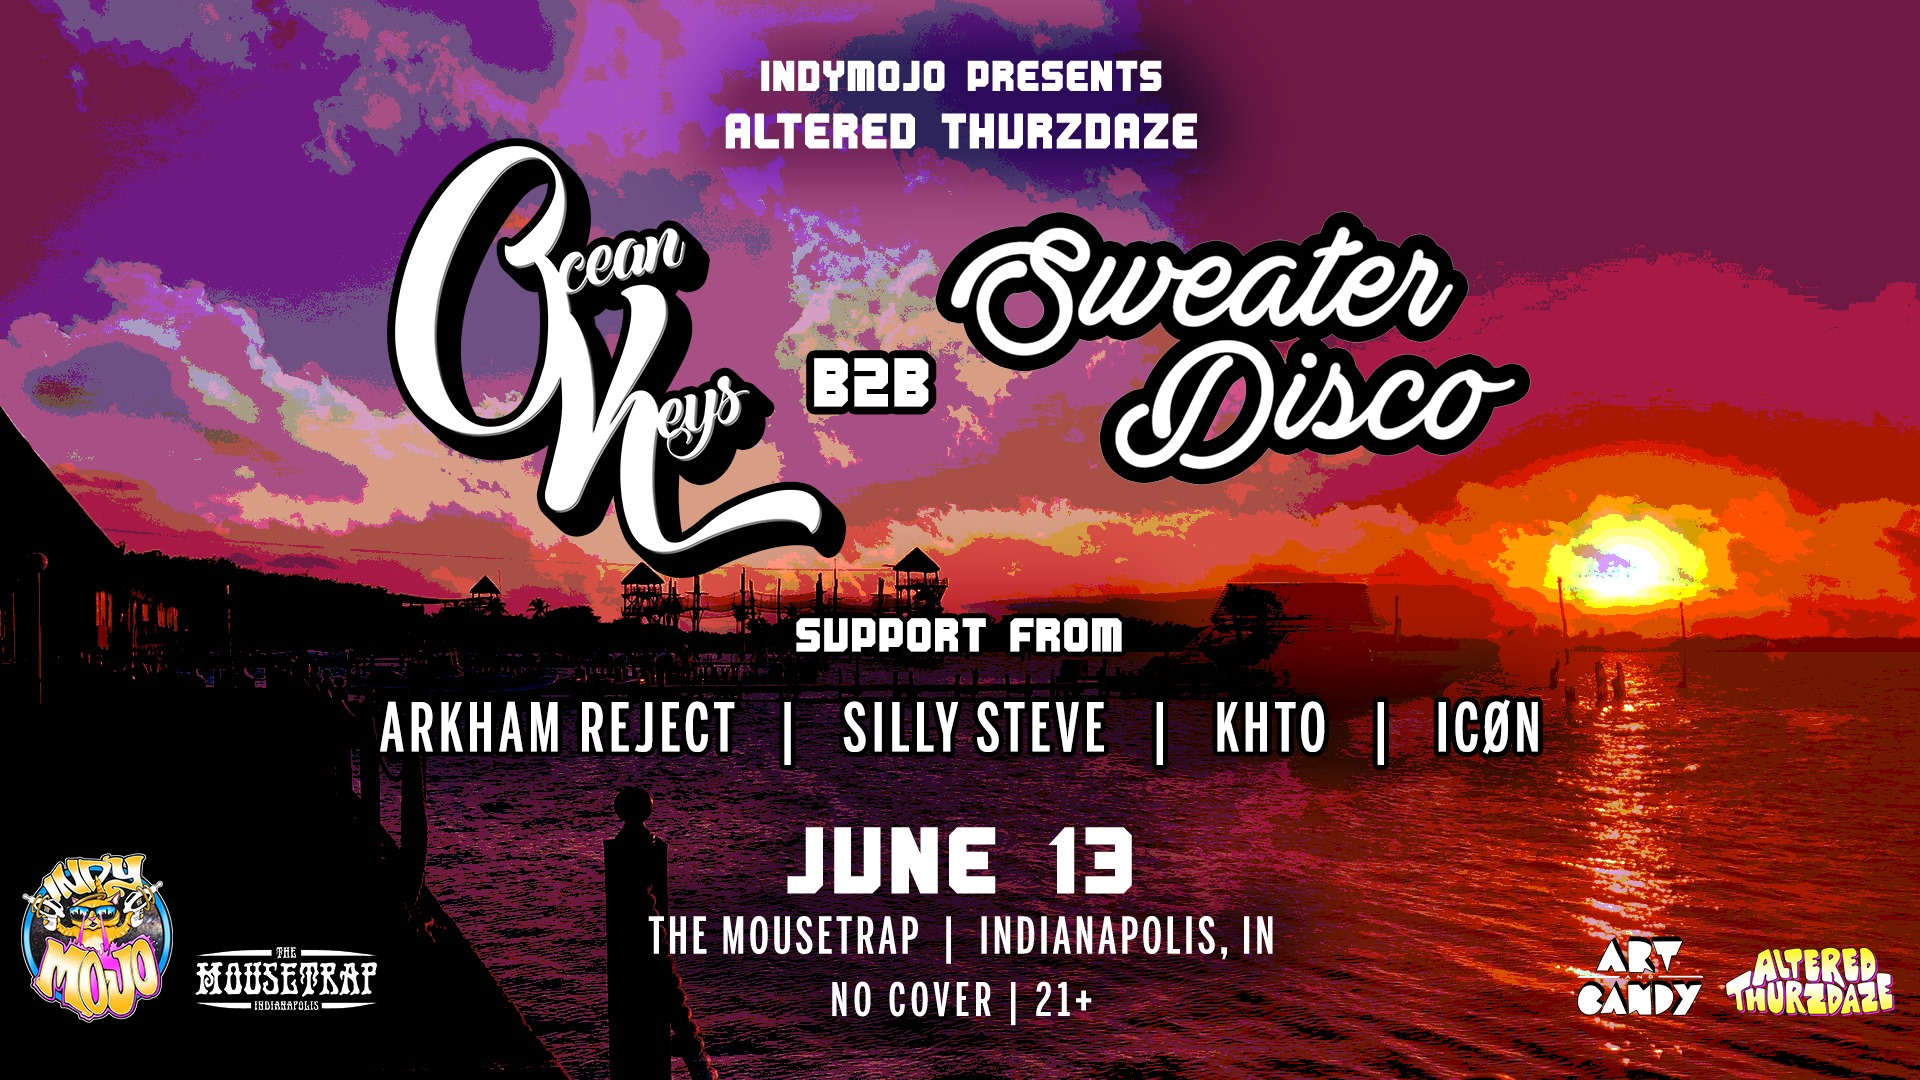 Altered Thurzdaze w/ Ocean Keys b2b Sweater Disco and more! - Thursday, June 13th